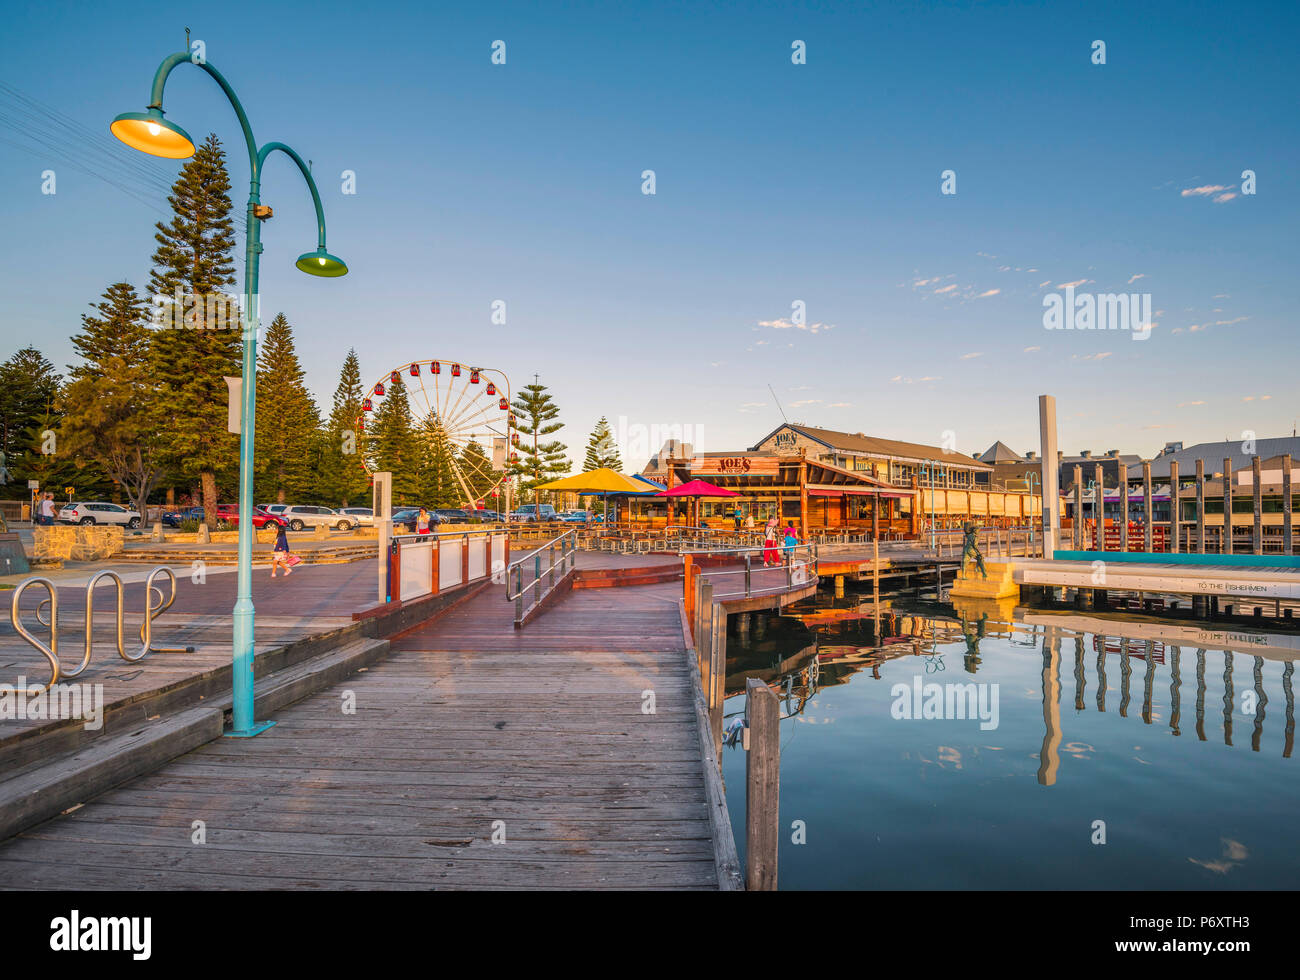 Fremantle, Perth, Western Australia, Australia. The waterfront of the Fremantle Harbour at sunset. - Stock Image